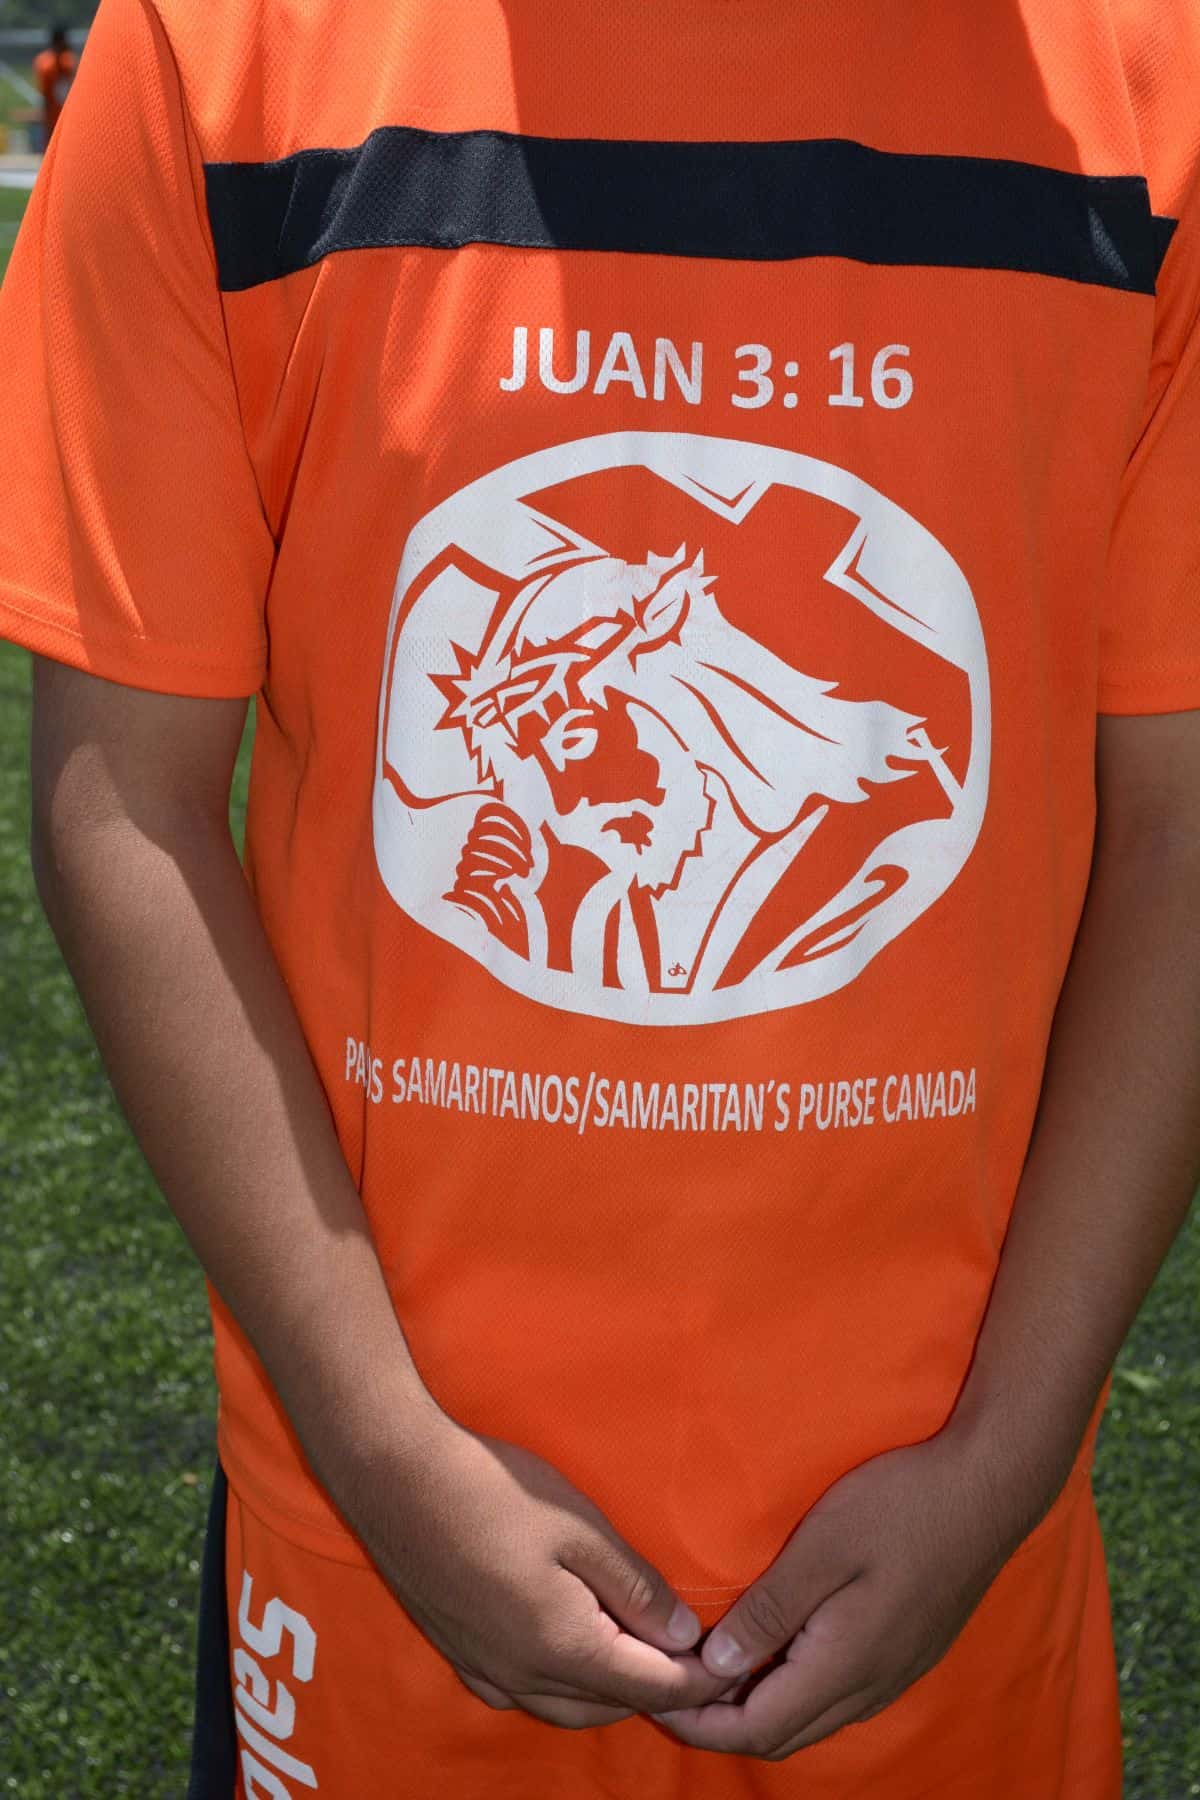 The shirt that each soccer player receives has a caricature of Jesus Christ and a prominent mention of John 3:16.